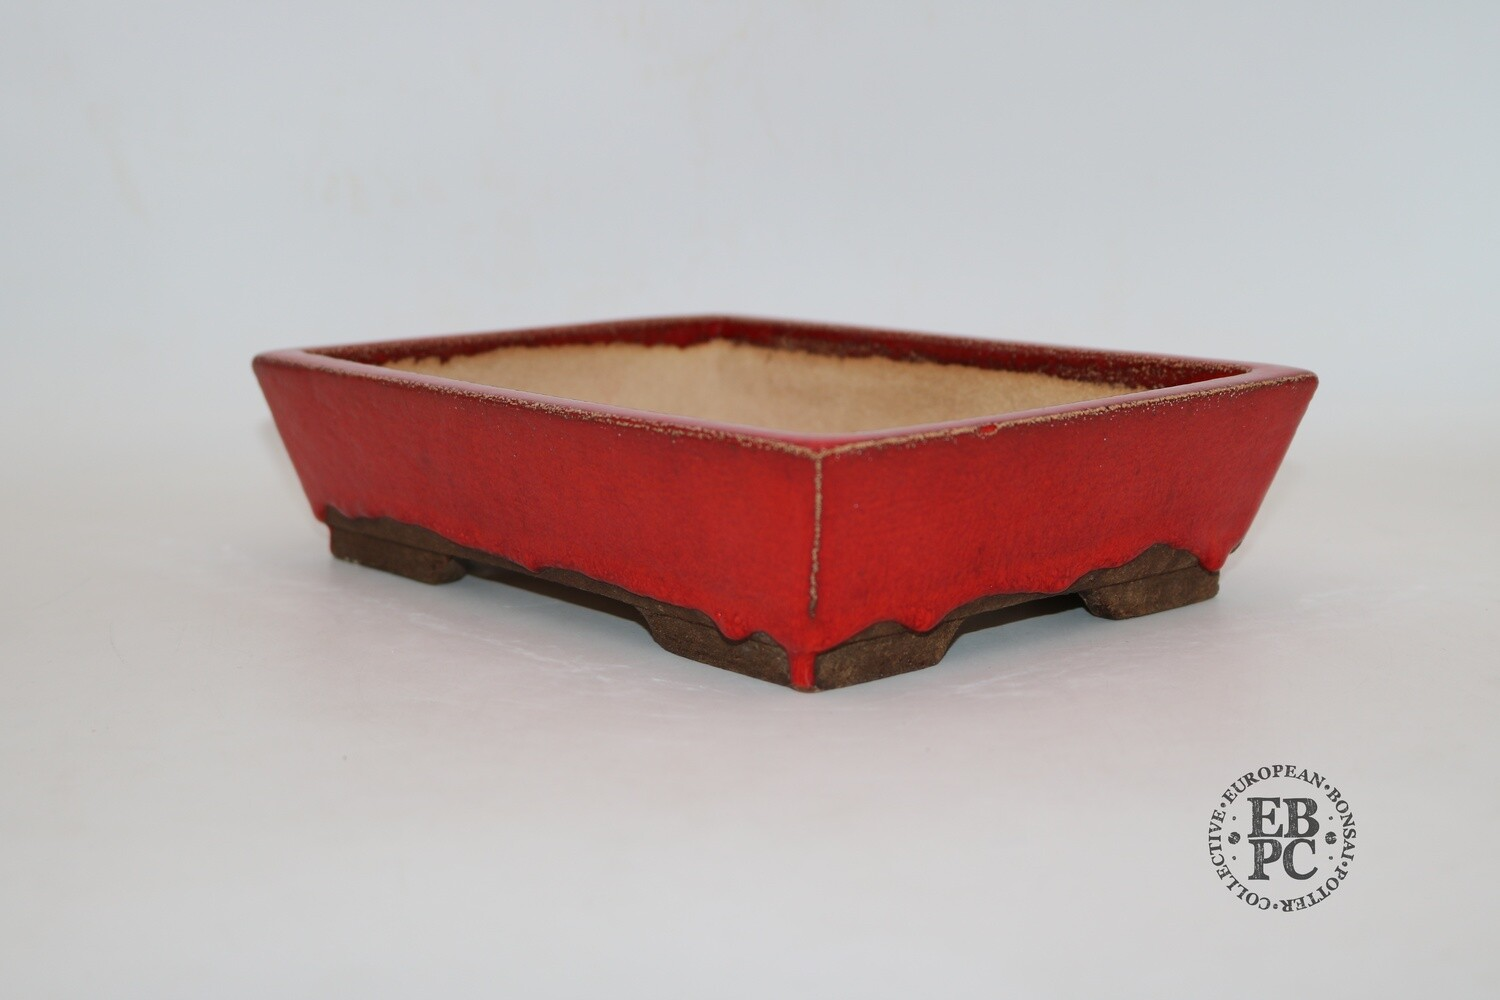 SOLD - M. J. G. Ceramica - 24.5cm; Rectangle; Blood Red Glaze; Recessed Feet; Maria Gonzalez.